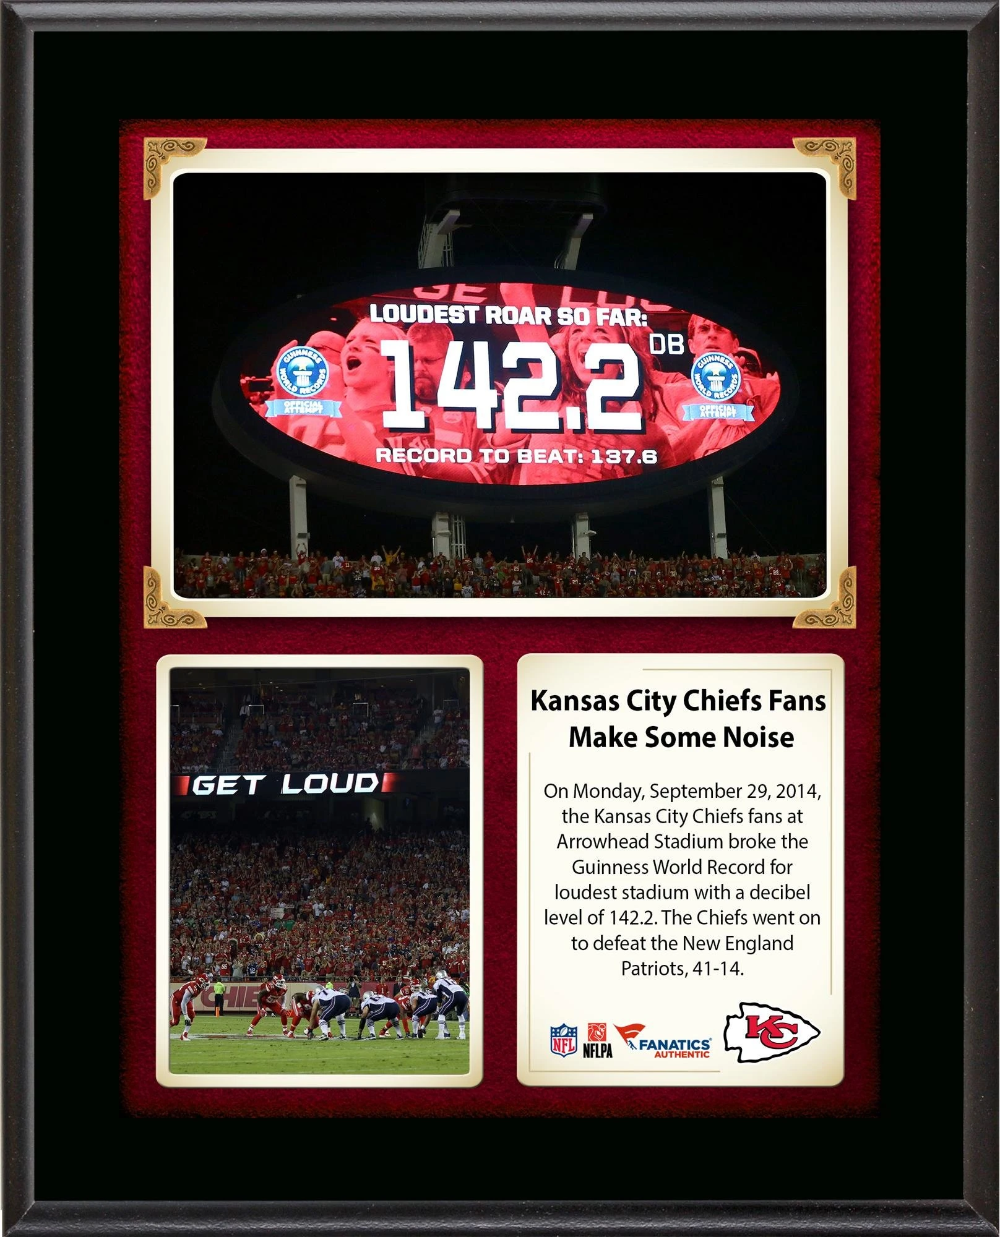 Kansas City Chiefs Fans Break The Guinness World Record For Loudest St Videos Images Pictures In 2020 World Records Kansas City Chiefs Guinness